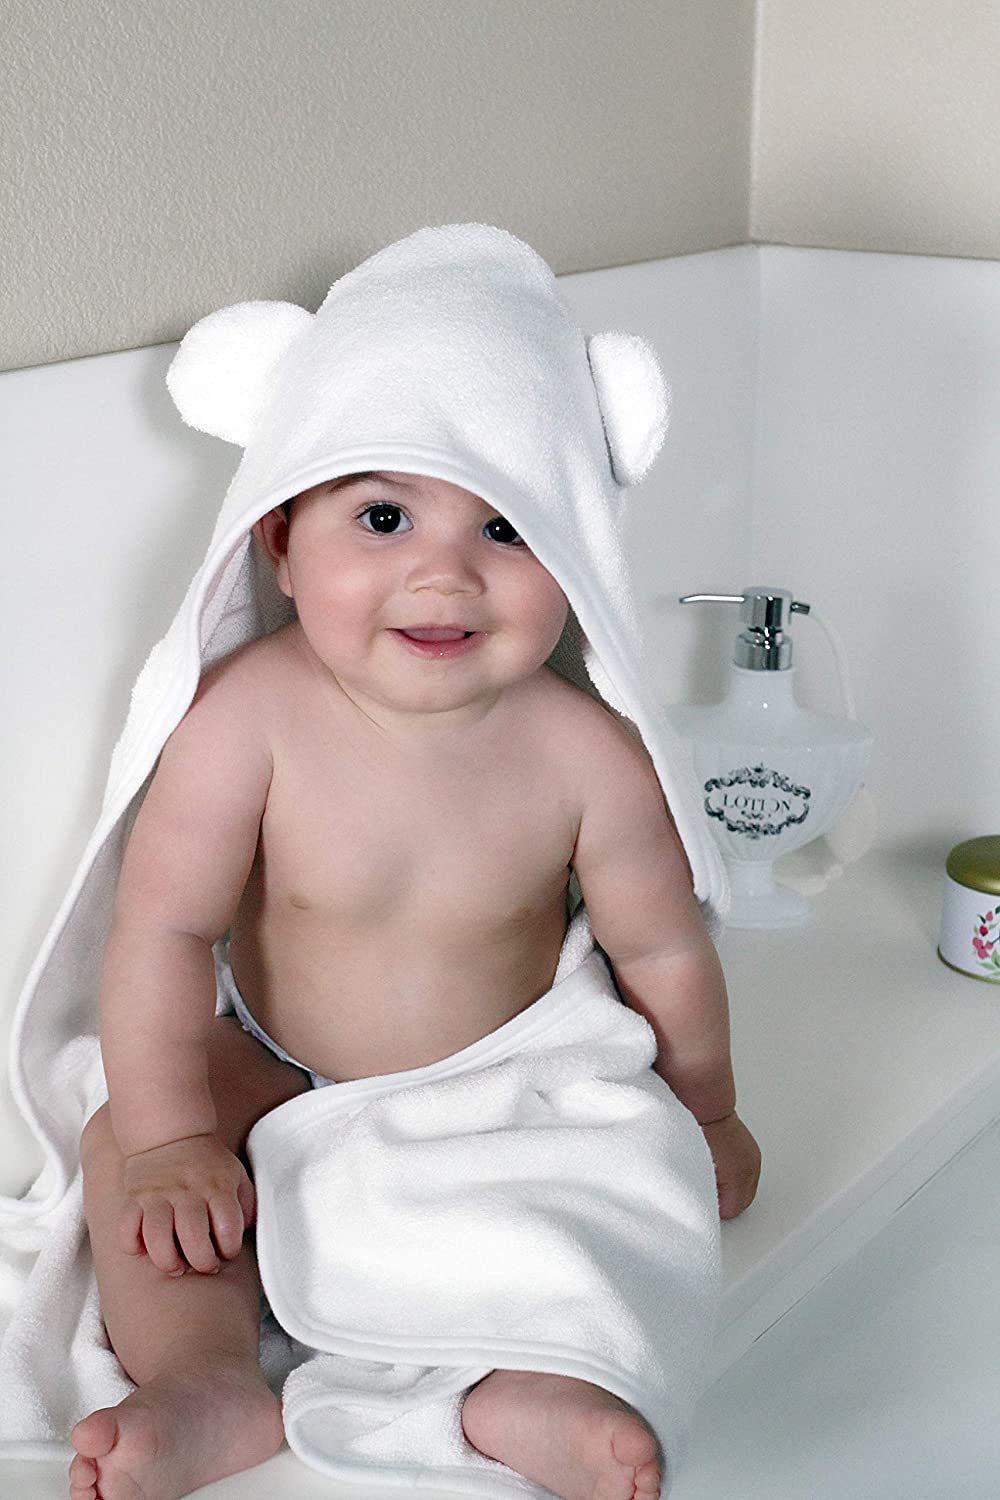 Amazon.com : Premium Bamboo Hooded Baby Towel and Washcloth Set: Organic, Ultra Soft Antibacterial and Hypoallergenic Bath Towels for Newborn or Infant Boy ...